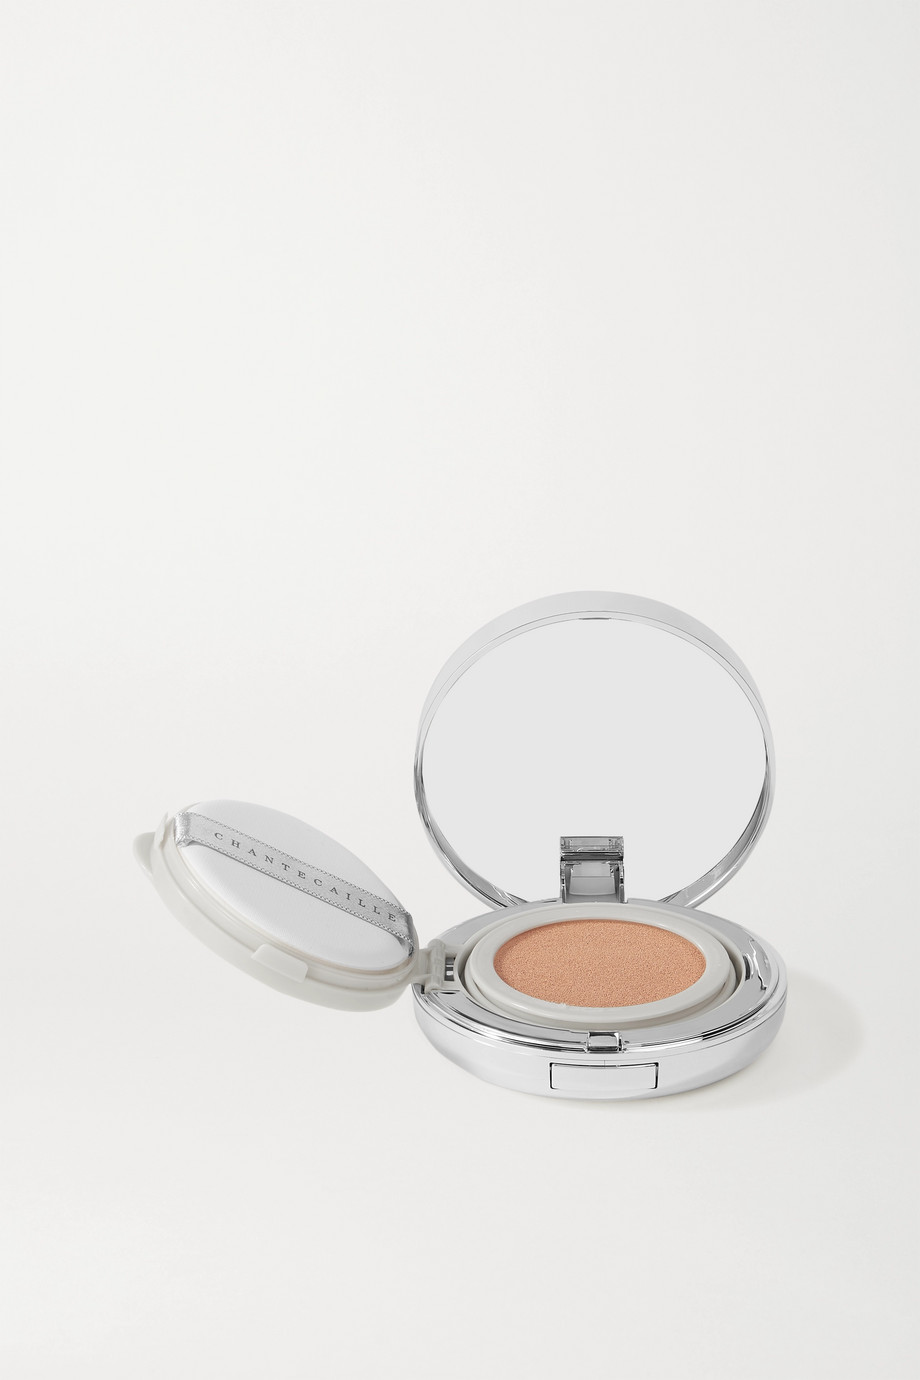 Chantecaille Future Skin Cushion Skincare Foundation - Aura